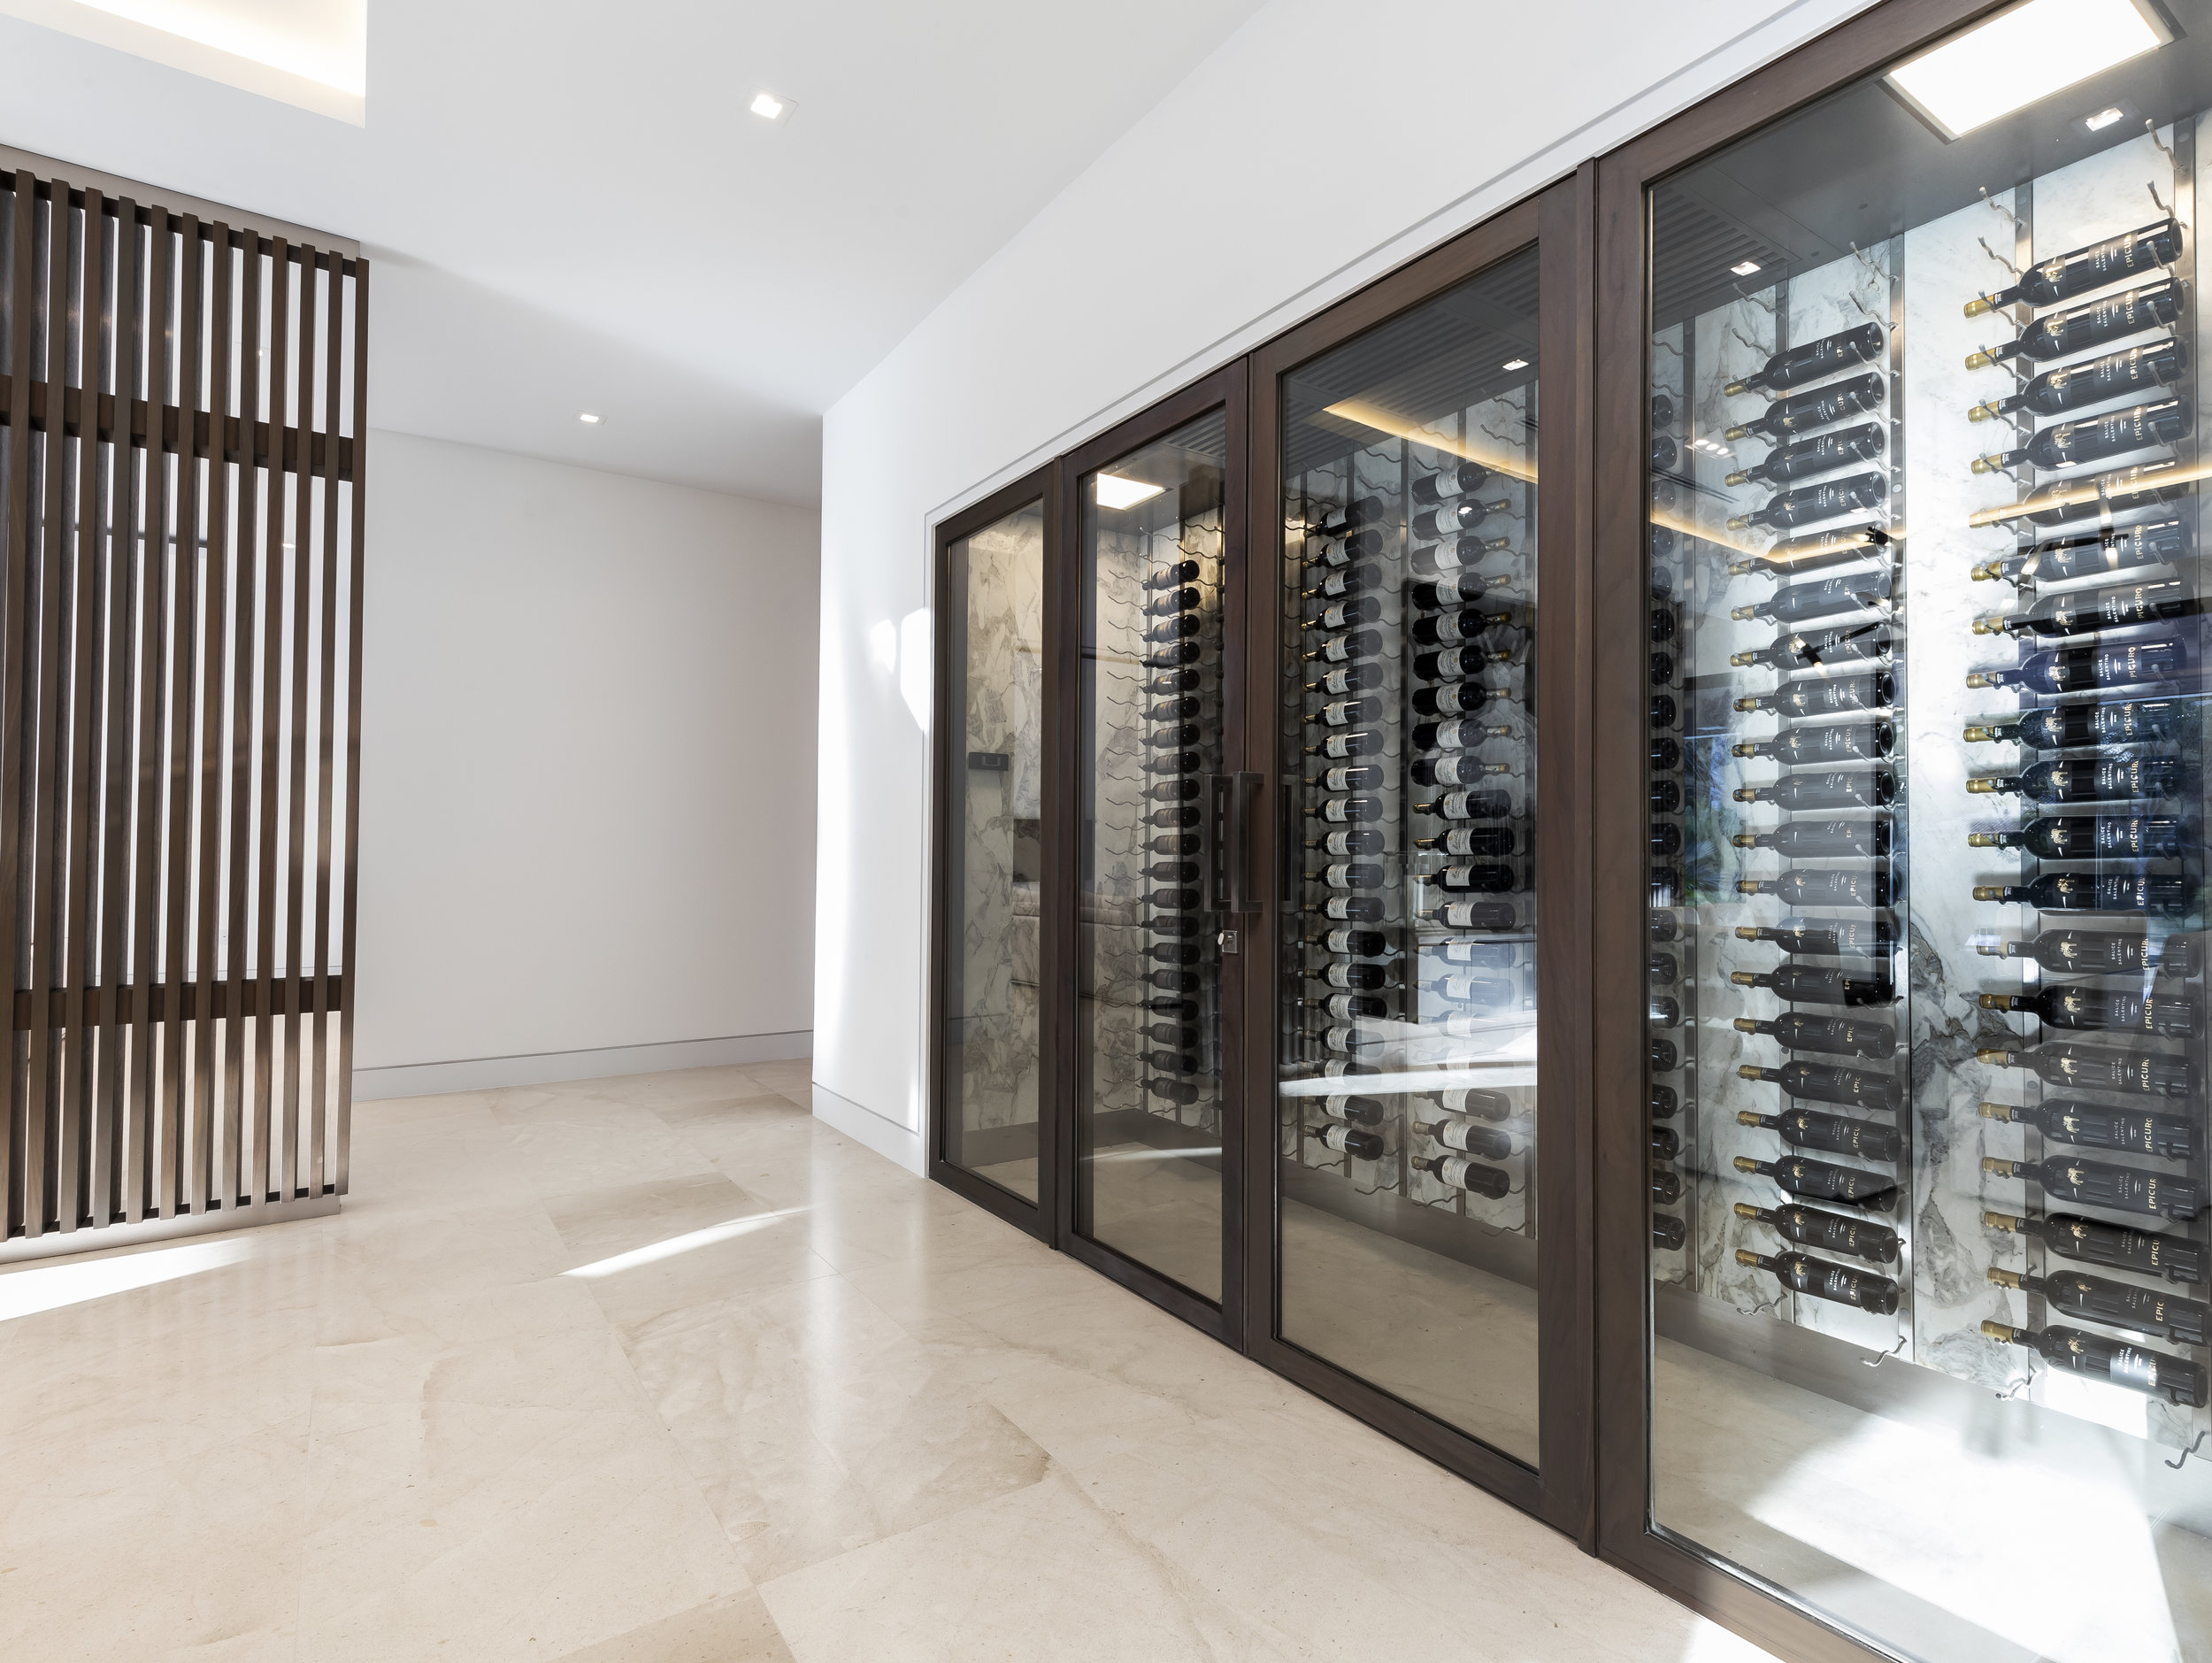 Check Out This Ritzy Pinecrest Mansion With Moat And $40,000 Wine Cellar Asking $5.5 Million